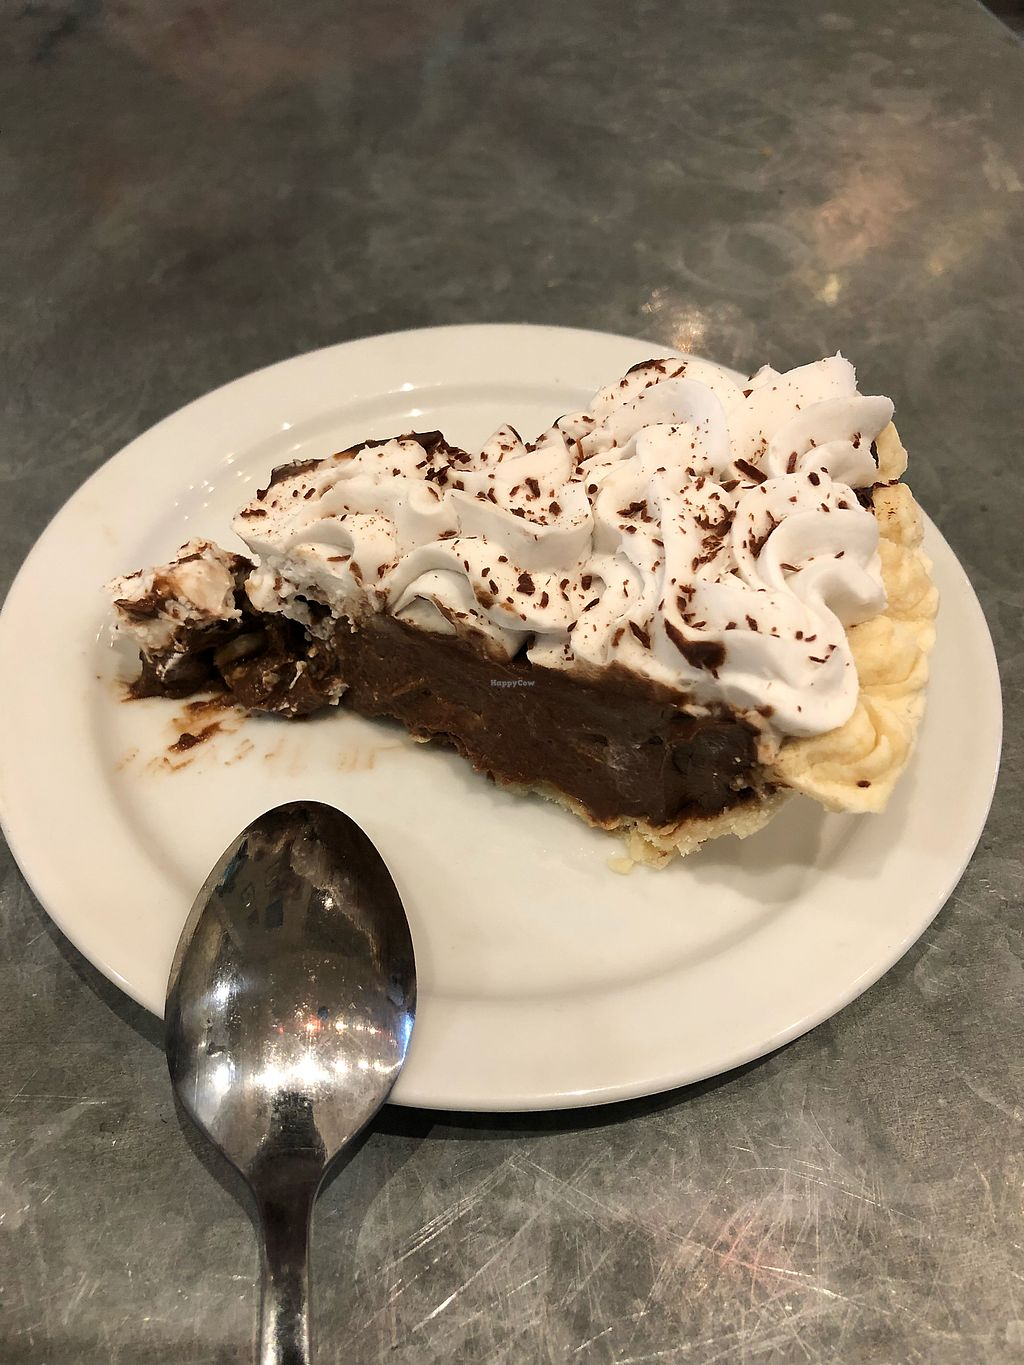 """Photo of Fare Well  by <a href=""""/members/profile/GMUGrad2002"""">GMUGrad2002</a> <br/>Chocolate Cream Pie <br/> December 23, 2017  - <a href='/contact/abuse/image/75173/338460'>Report</a>"""